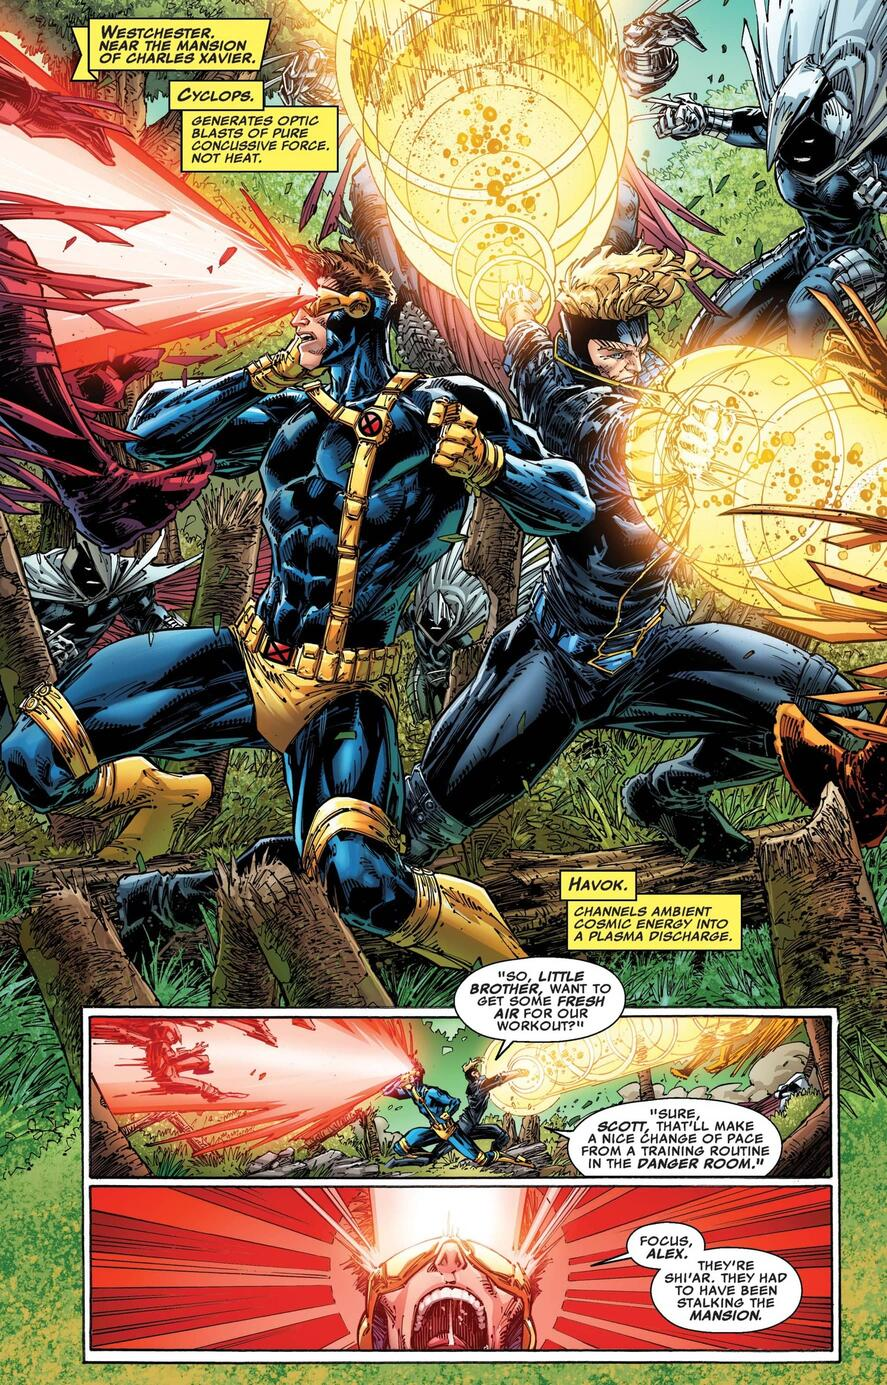 Cyclops and Havok team-up against the Shi'ar.